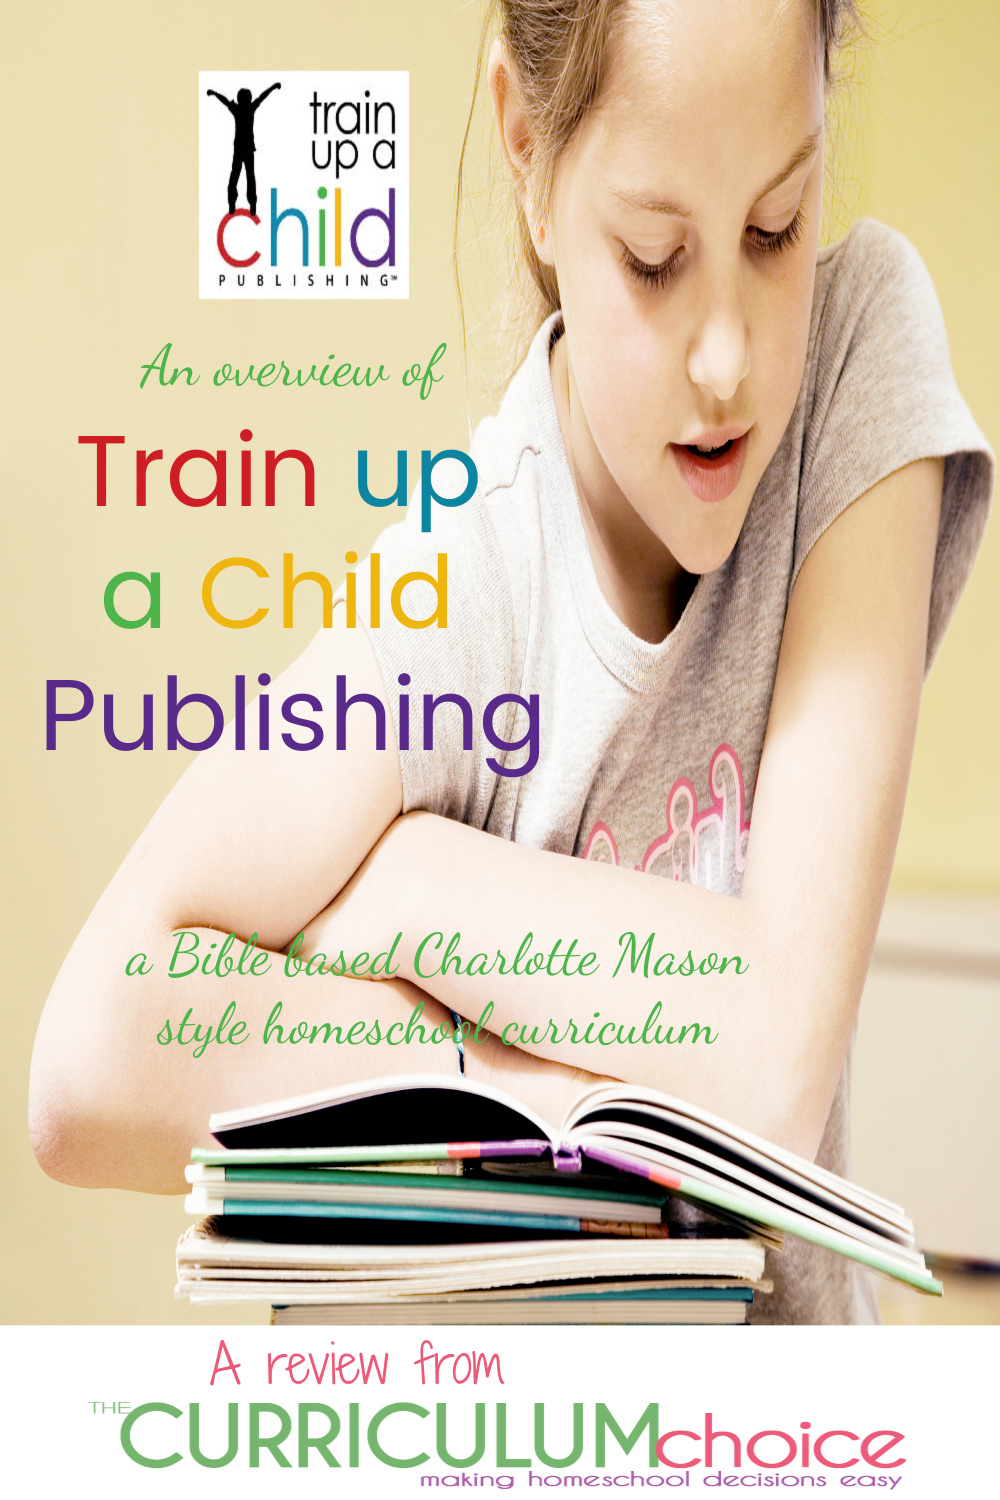 An overview of Train up a Child Publishing - a literature based Charlotte Mason approach to homeschooling using the Bible and great children's literature to teach Bible, History/Reading, Science, Language Arts, and Fine Arts together. A review from The Curriculum Choice